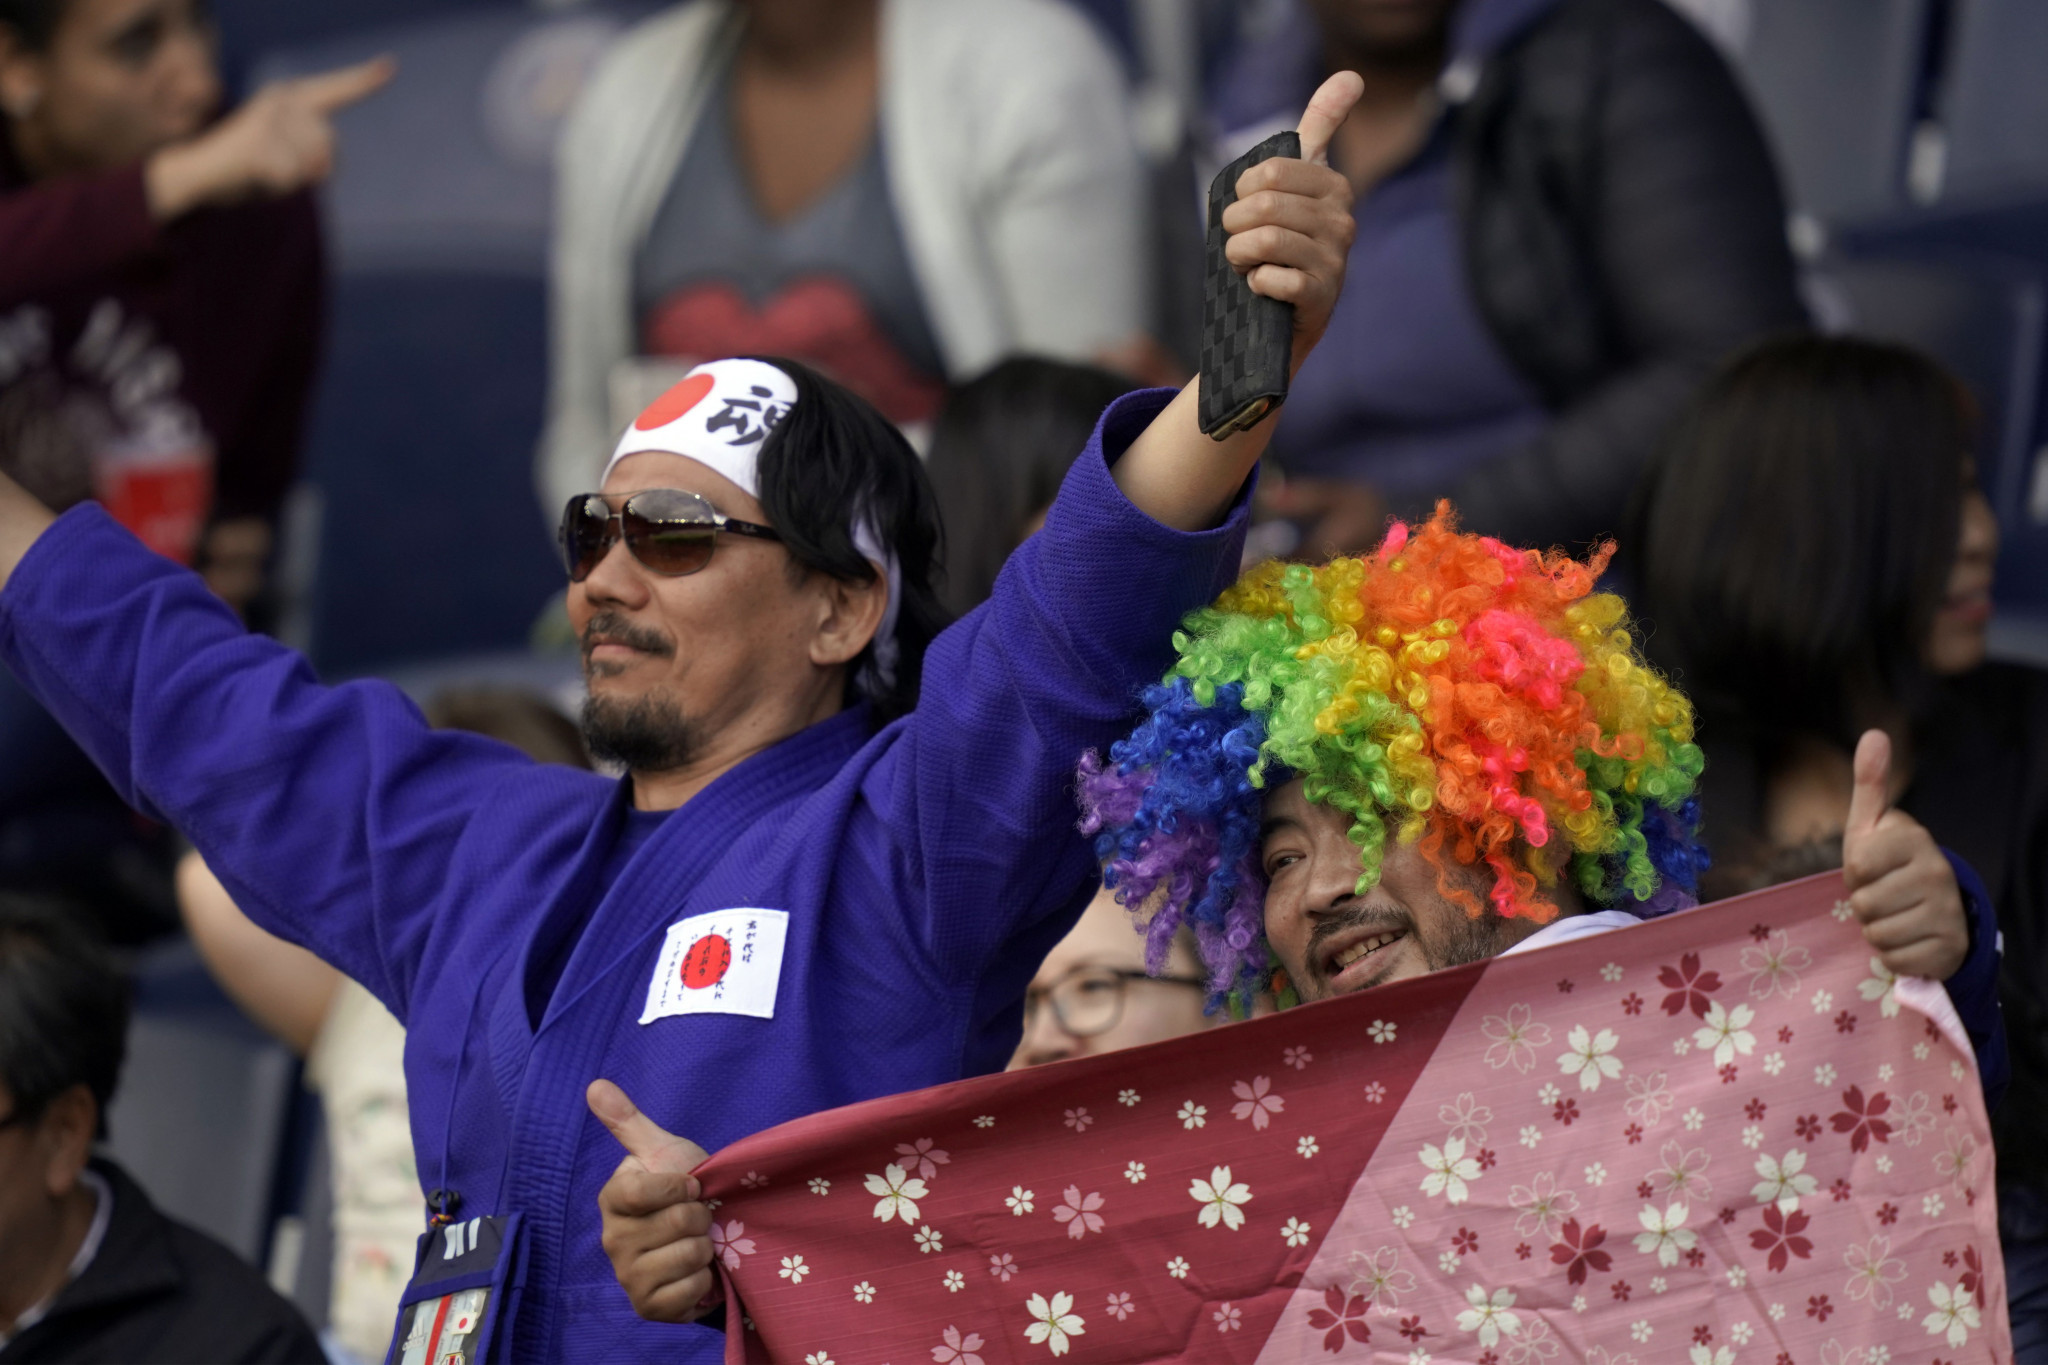 Japan's supporters got into the World Cup spirit to cheer on their team in Paris ©Getty Images